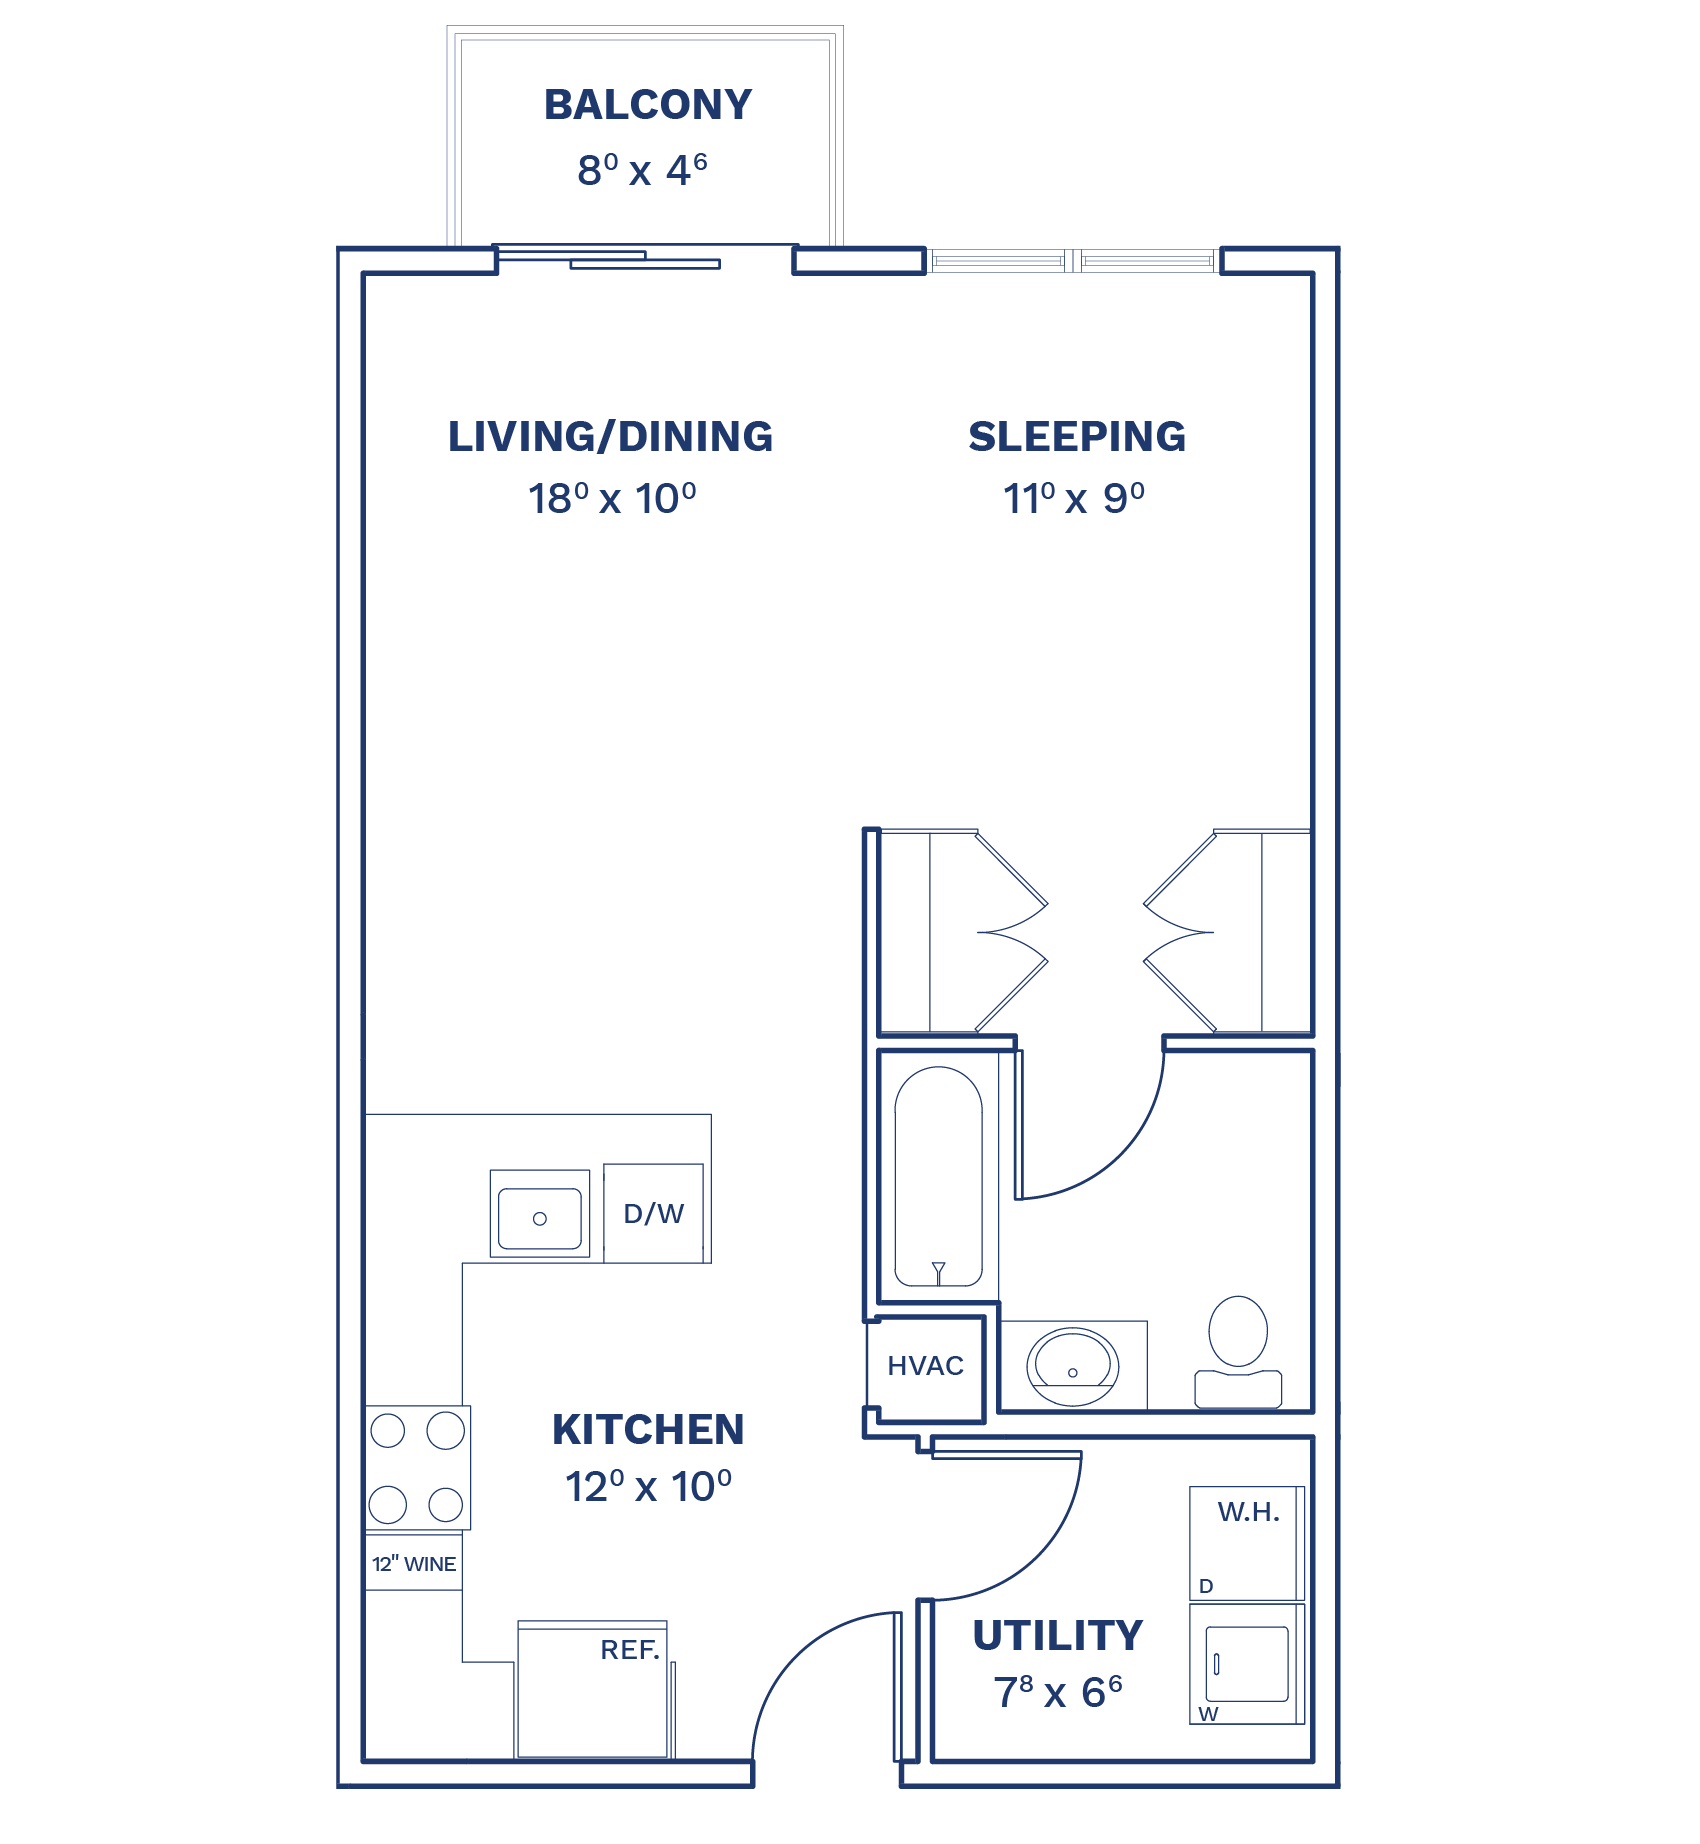 Floorplan of Unit S6